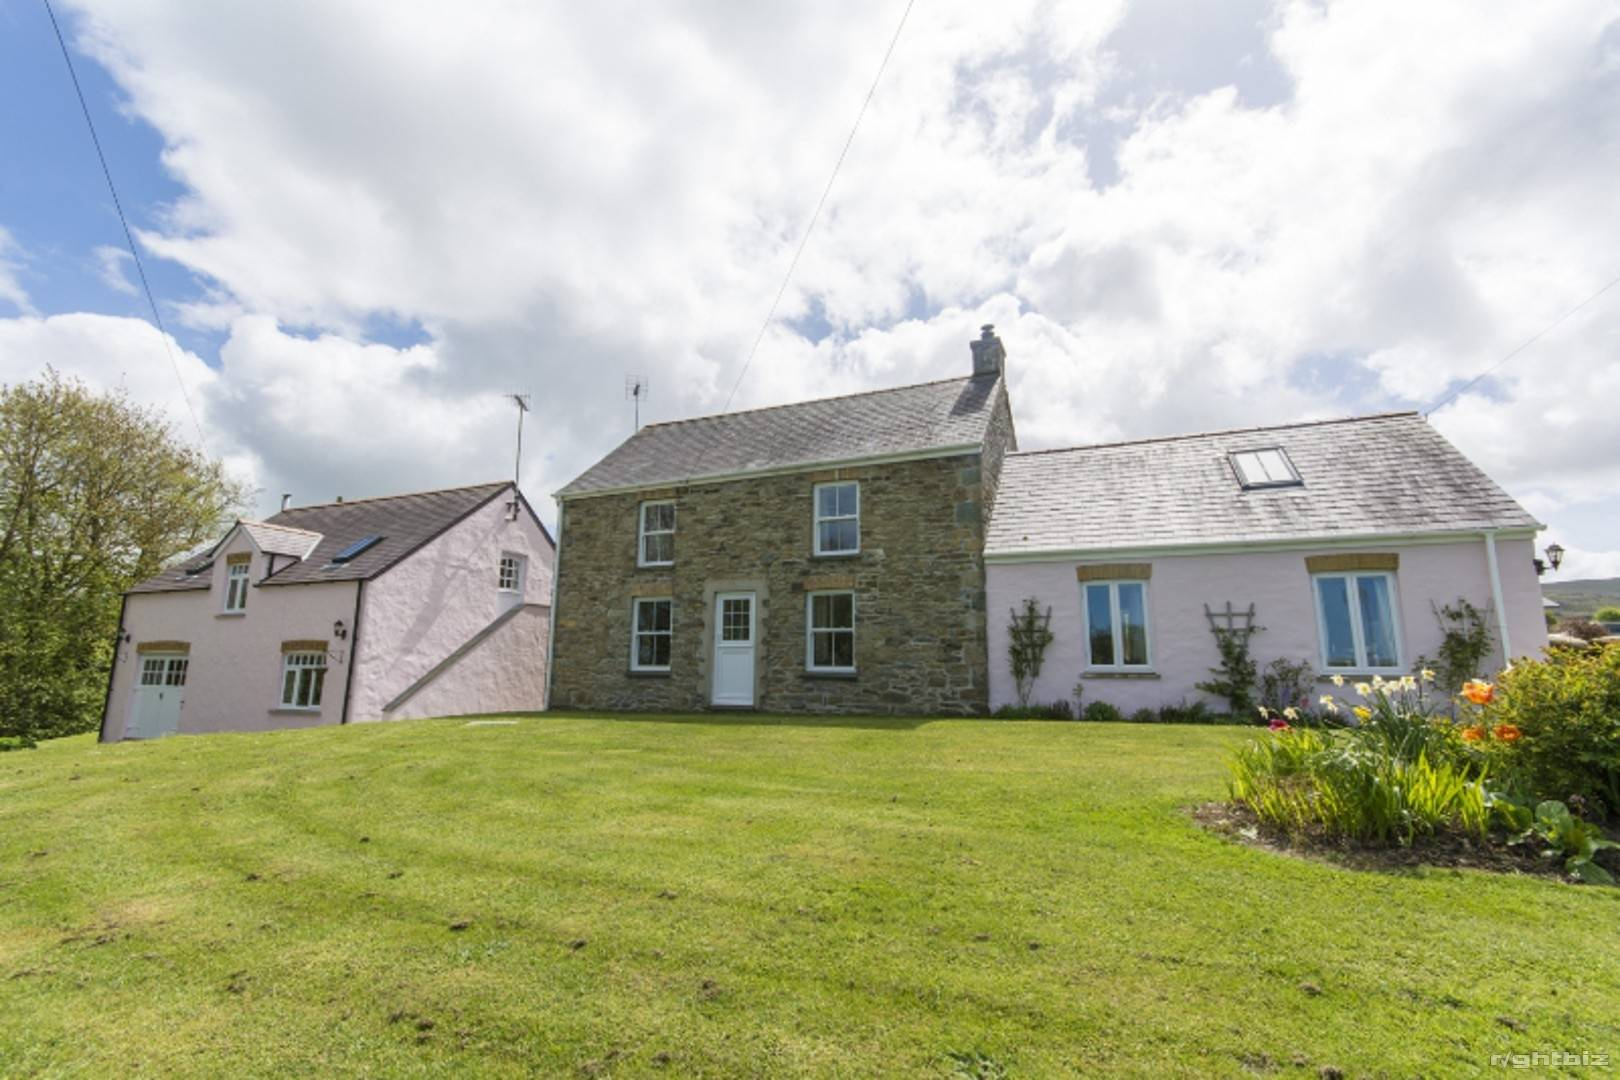 HOLIDAY LETTING BUSINESS/ LIVERY POTENTIAL + SMALLHOLDING + STABLES SET IN 10 ACRES - PEMBROKESHIRE - Image 2